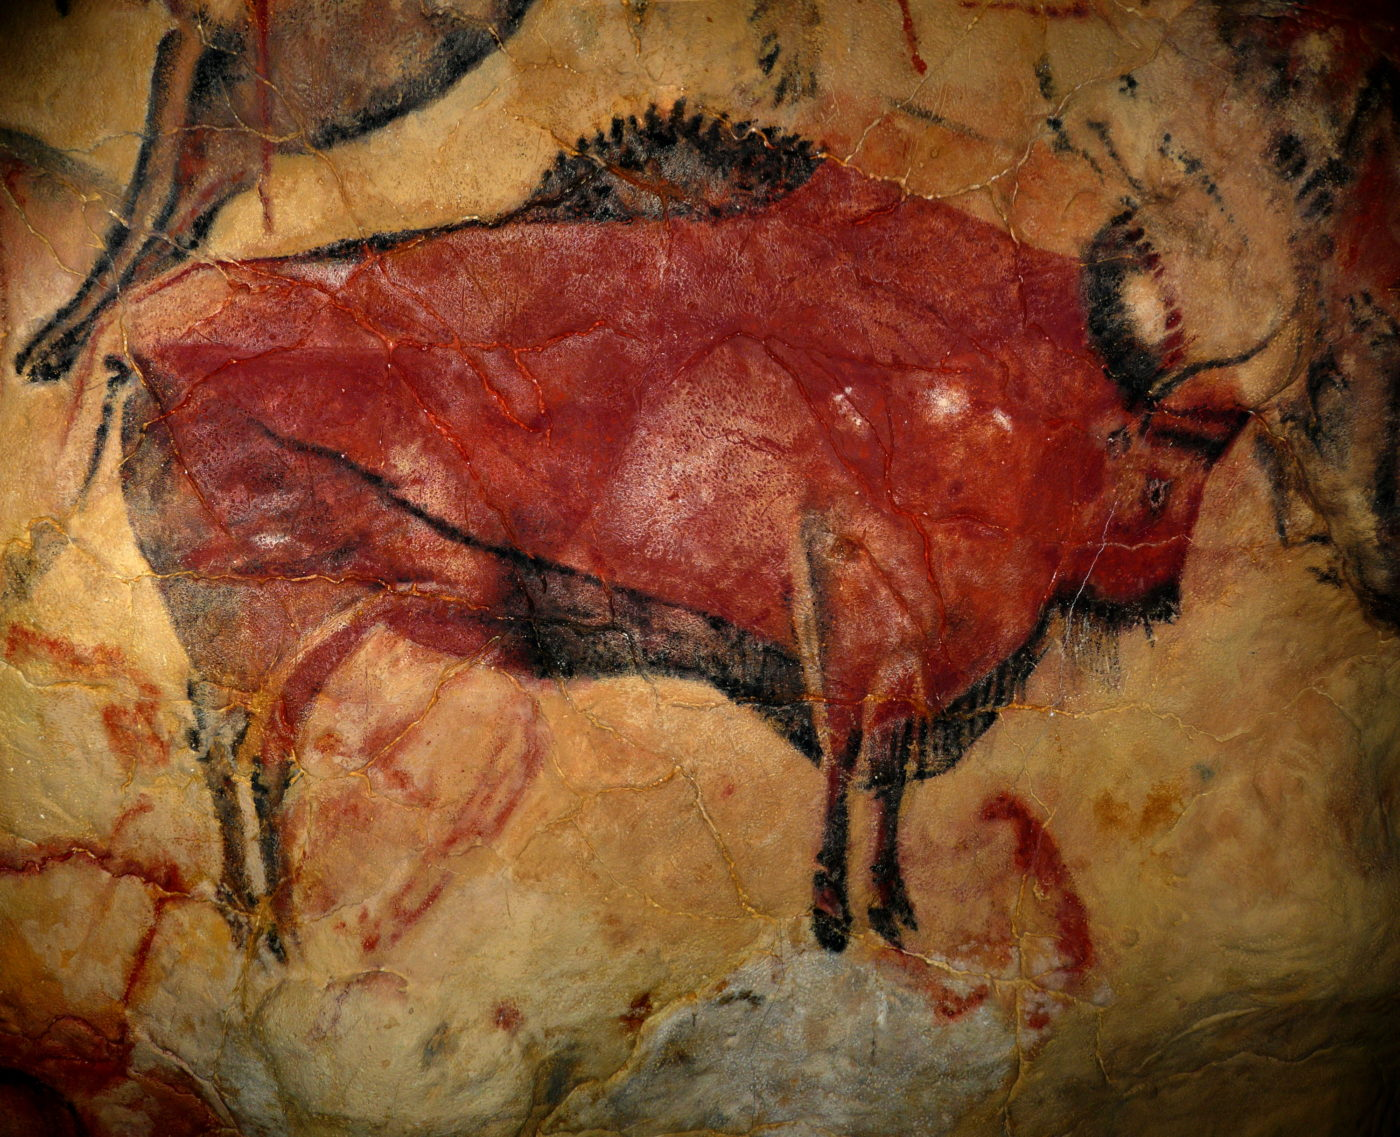 A painting of a bison from the cave of Altamira in Spain, created with red ochre between 15,000 and 16.500 BC.